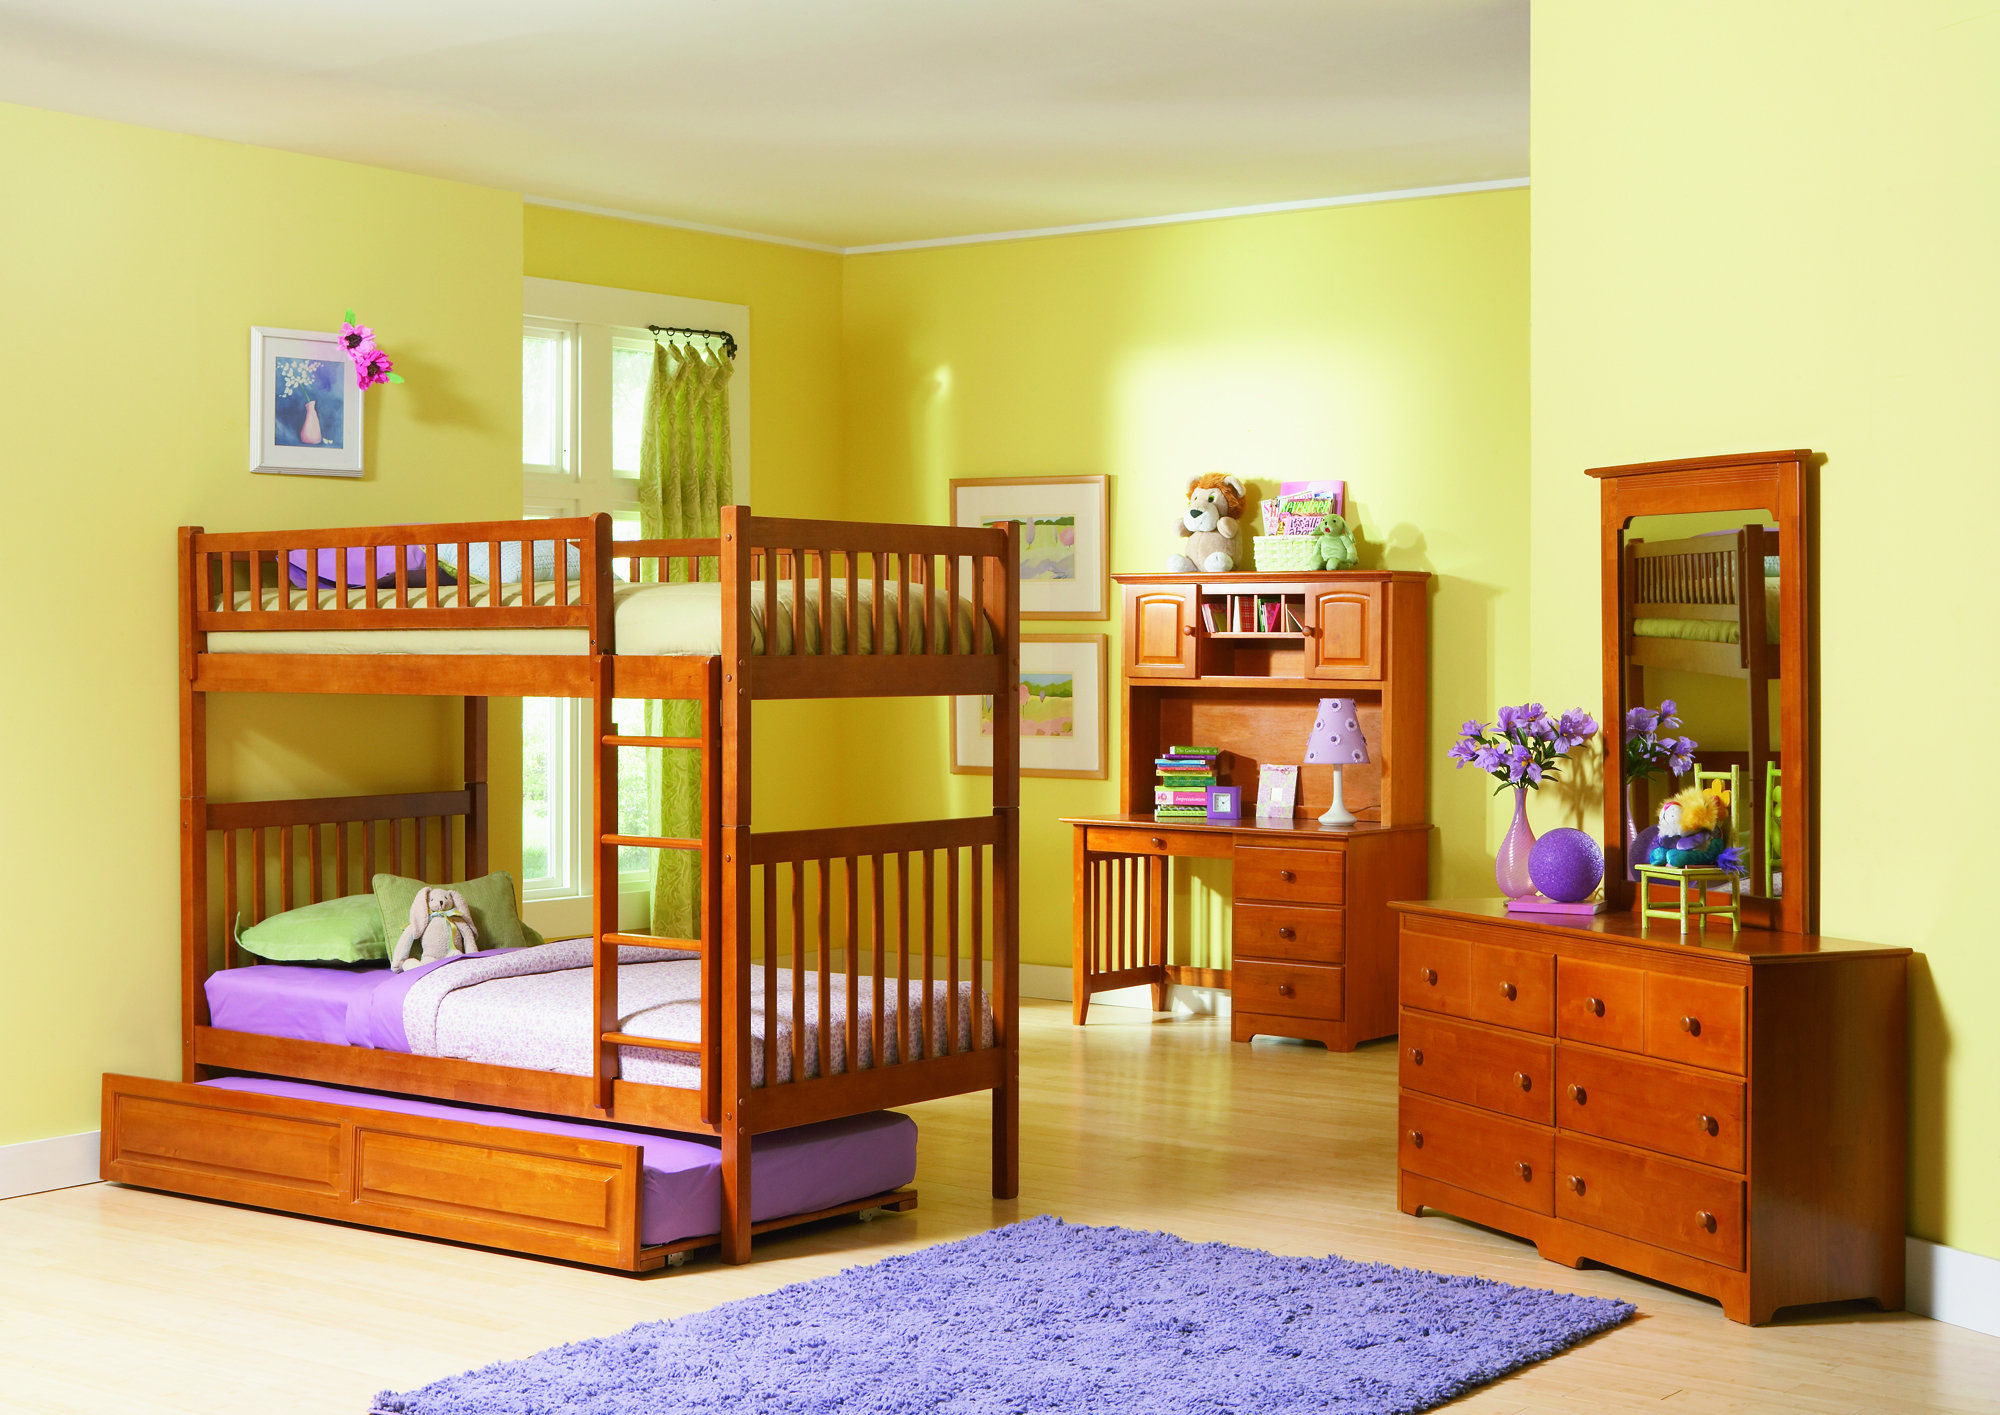 Astonishing Design Of The Bedroom Areas With Brown Wooden Bunk Bed And Purple Rugs And Brown Wooden Cabinets As Kids Bedroom Furniture Ideas